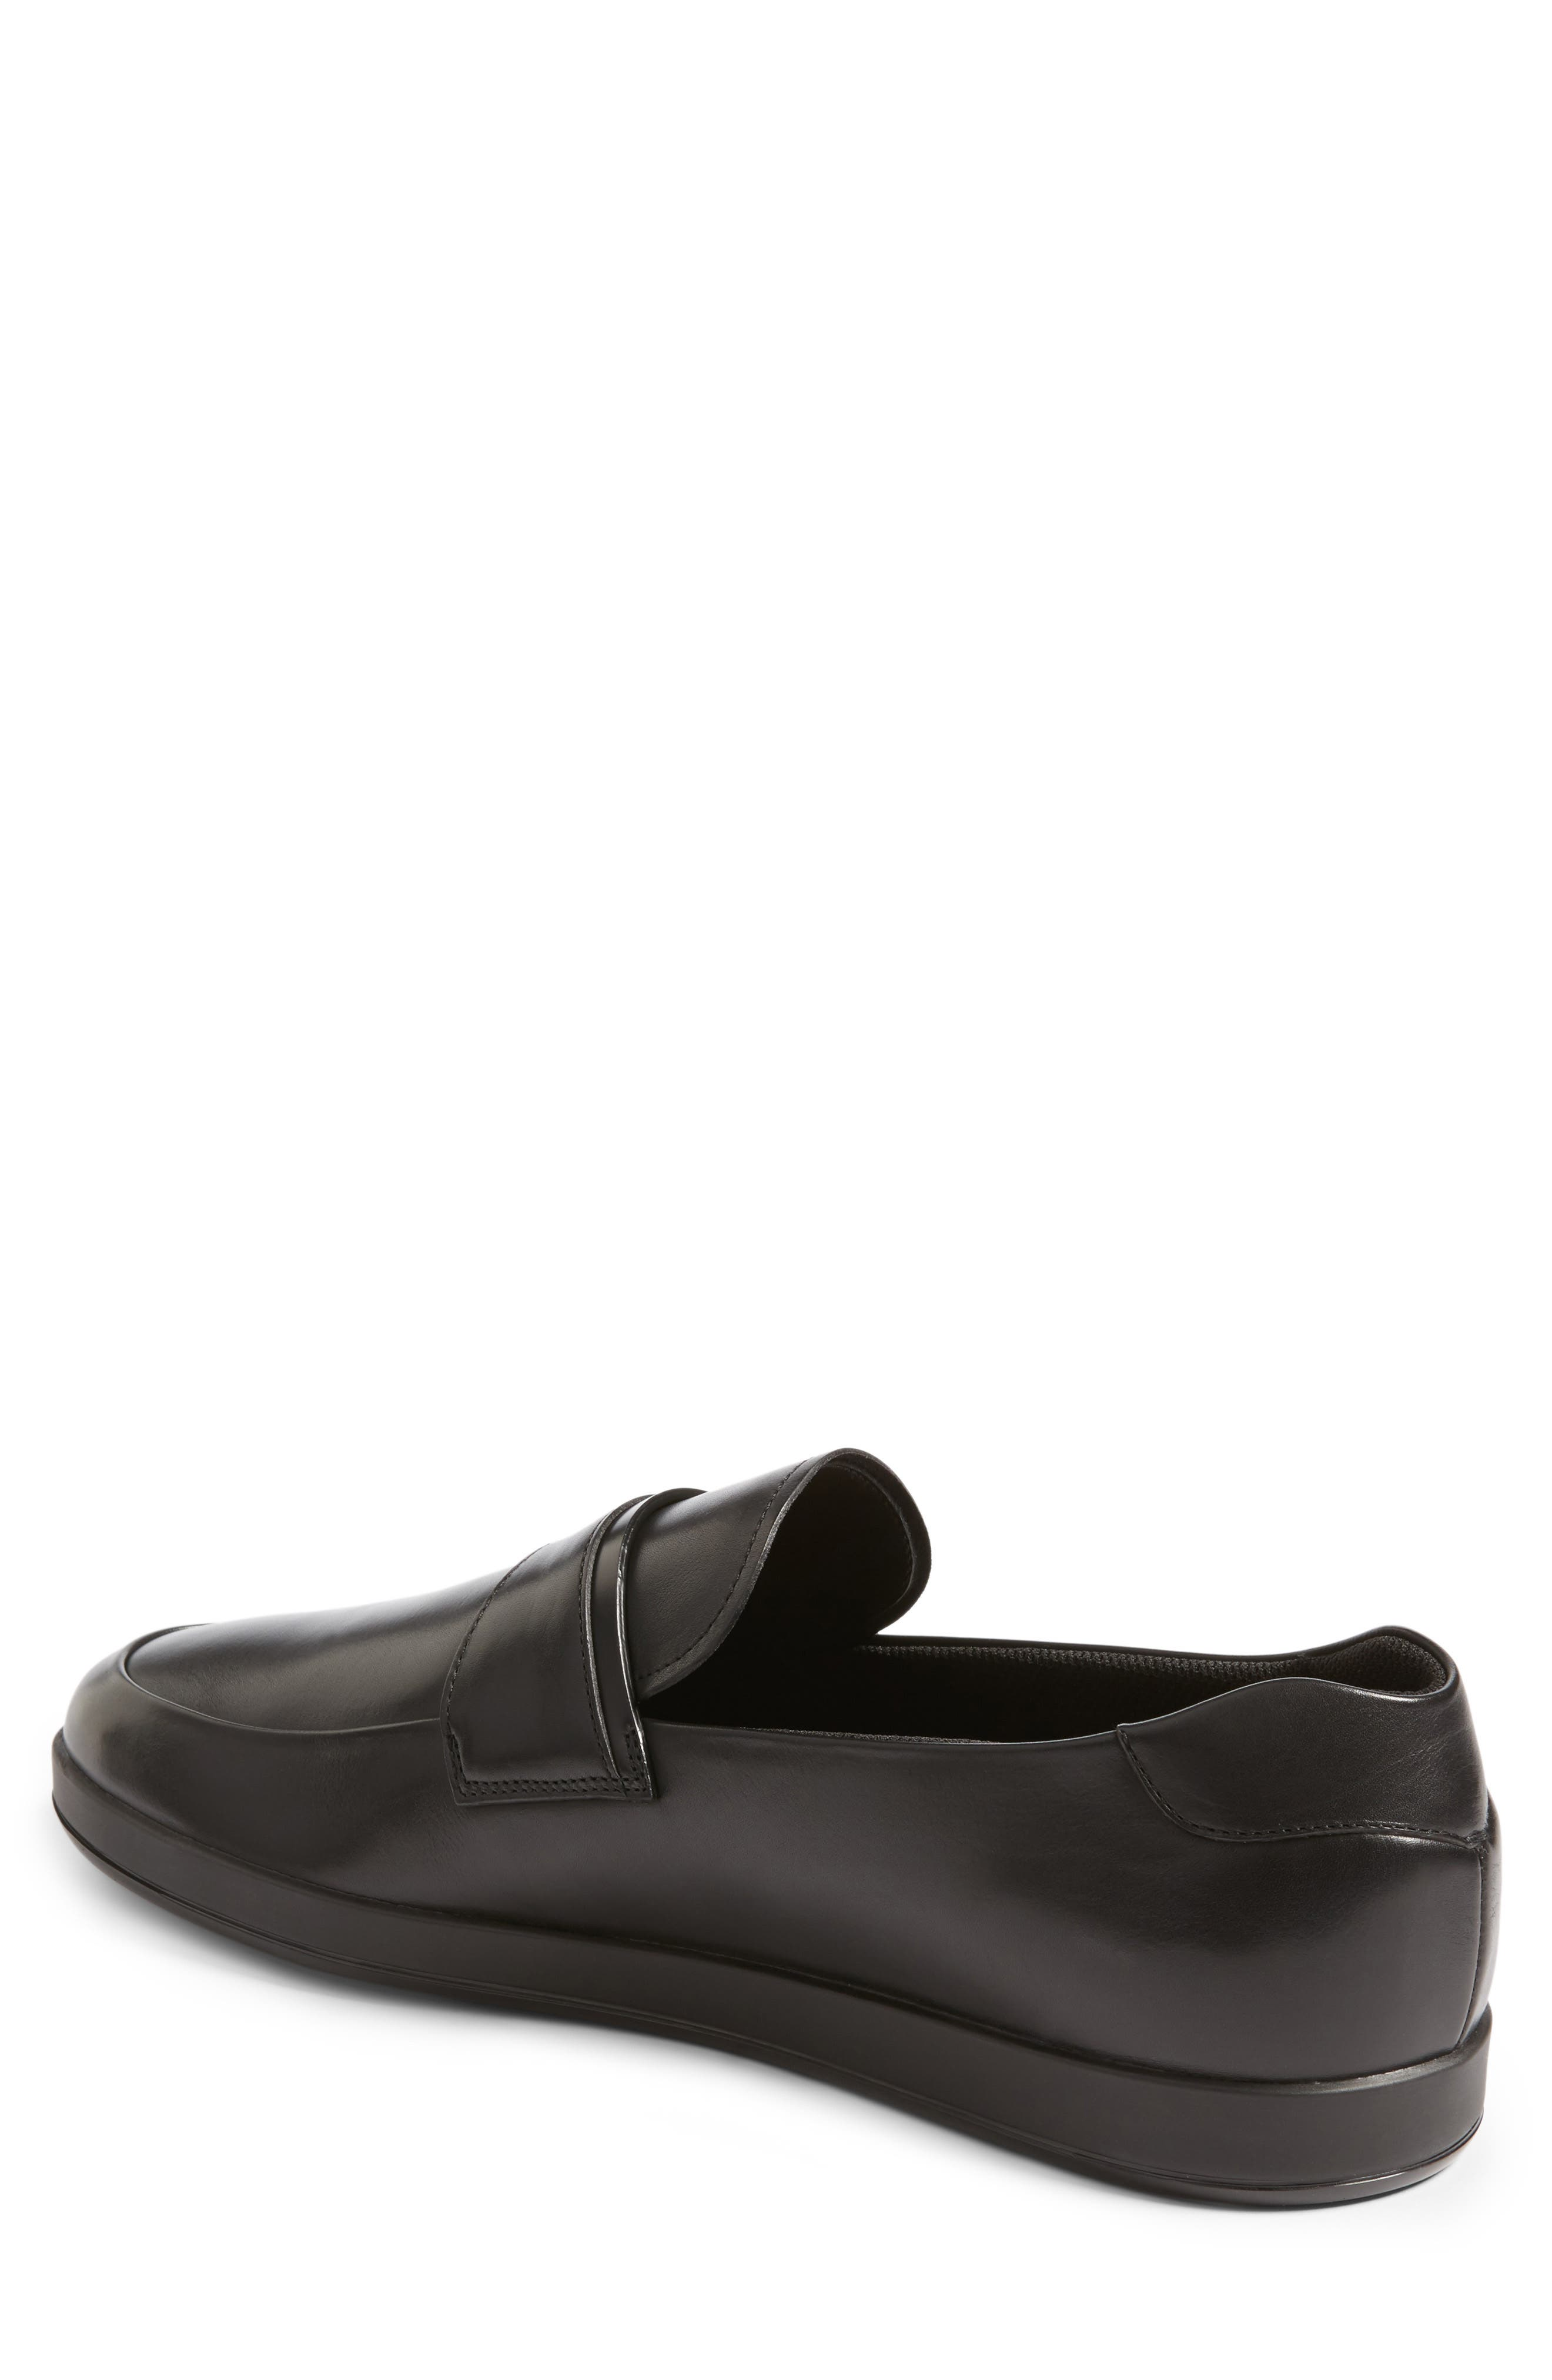 Toblac Penny Loafer,                             Alternate thumbnail 2, color,                             001